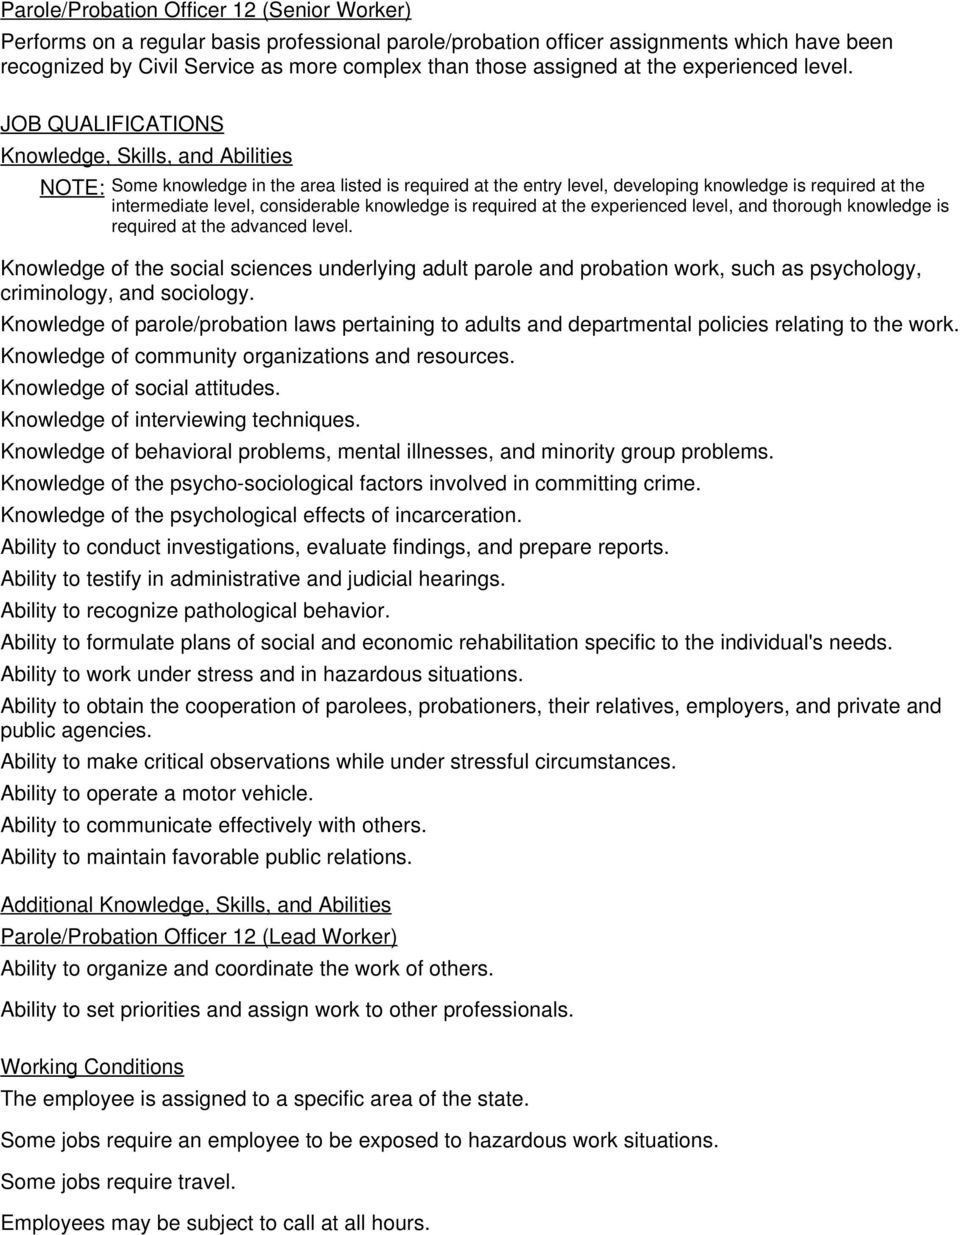 JOB QUALIFICATIONS Knowledge, Skills, and Abilities NOTE: Some knowledge in the area listed is required at the entry level, developing knowledge is required at the intermediate level, considerable